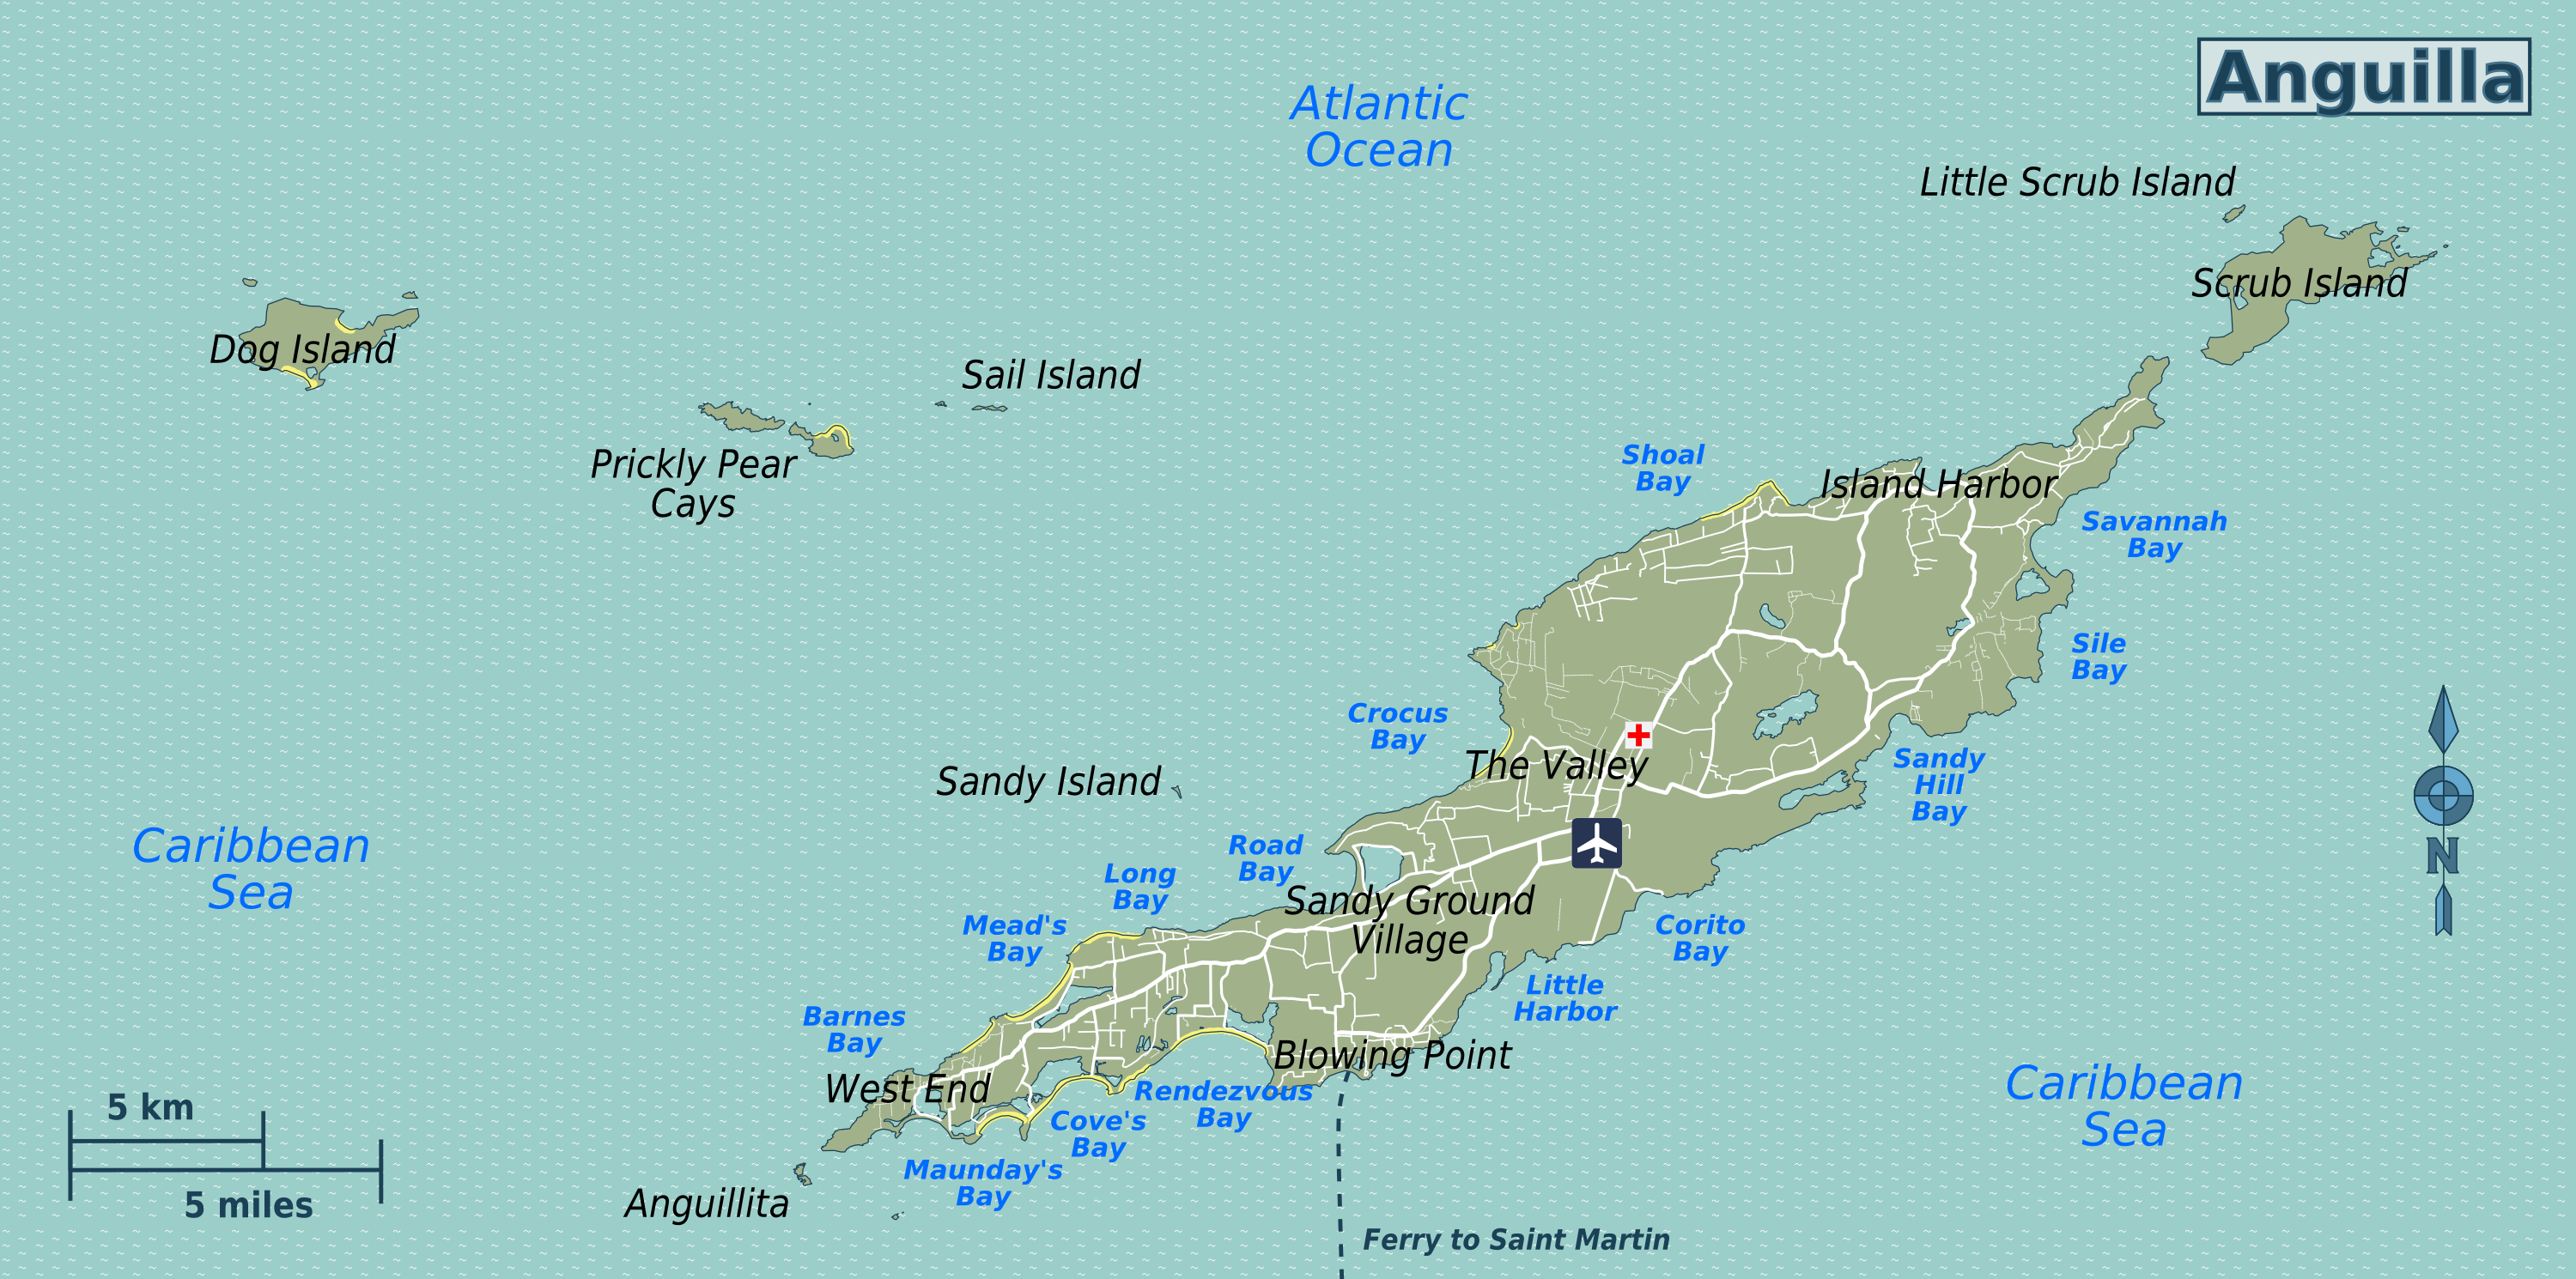 Anguilla_regions_map